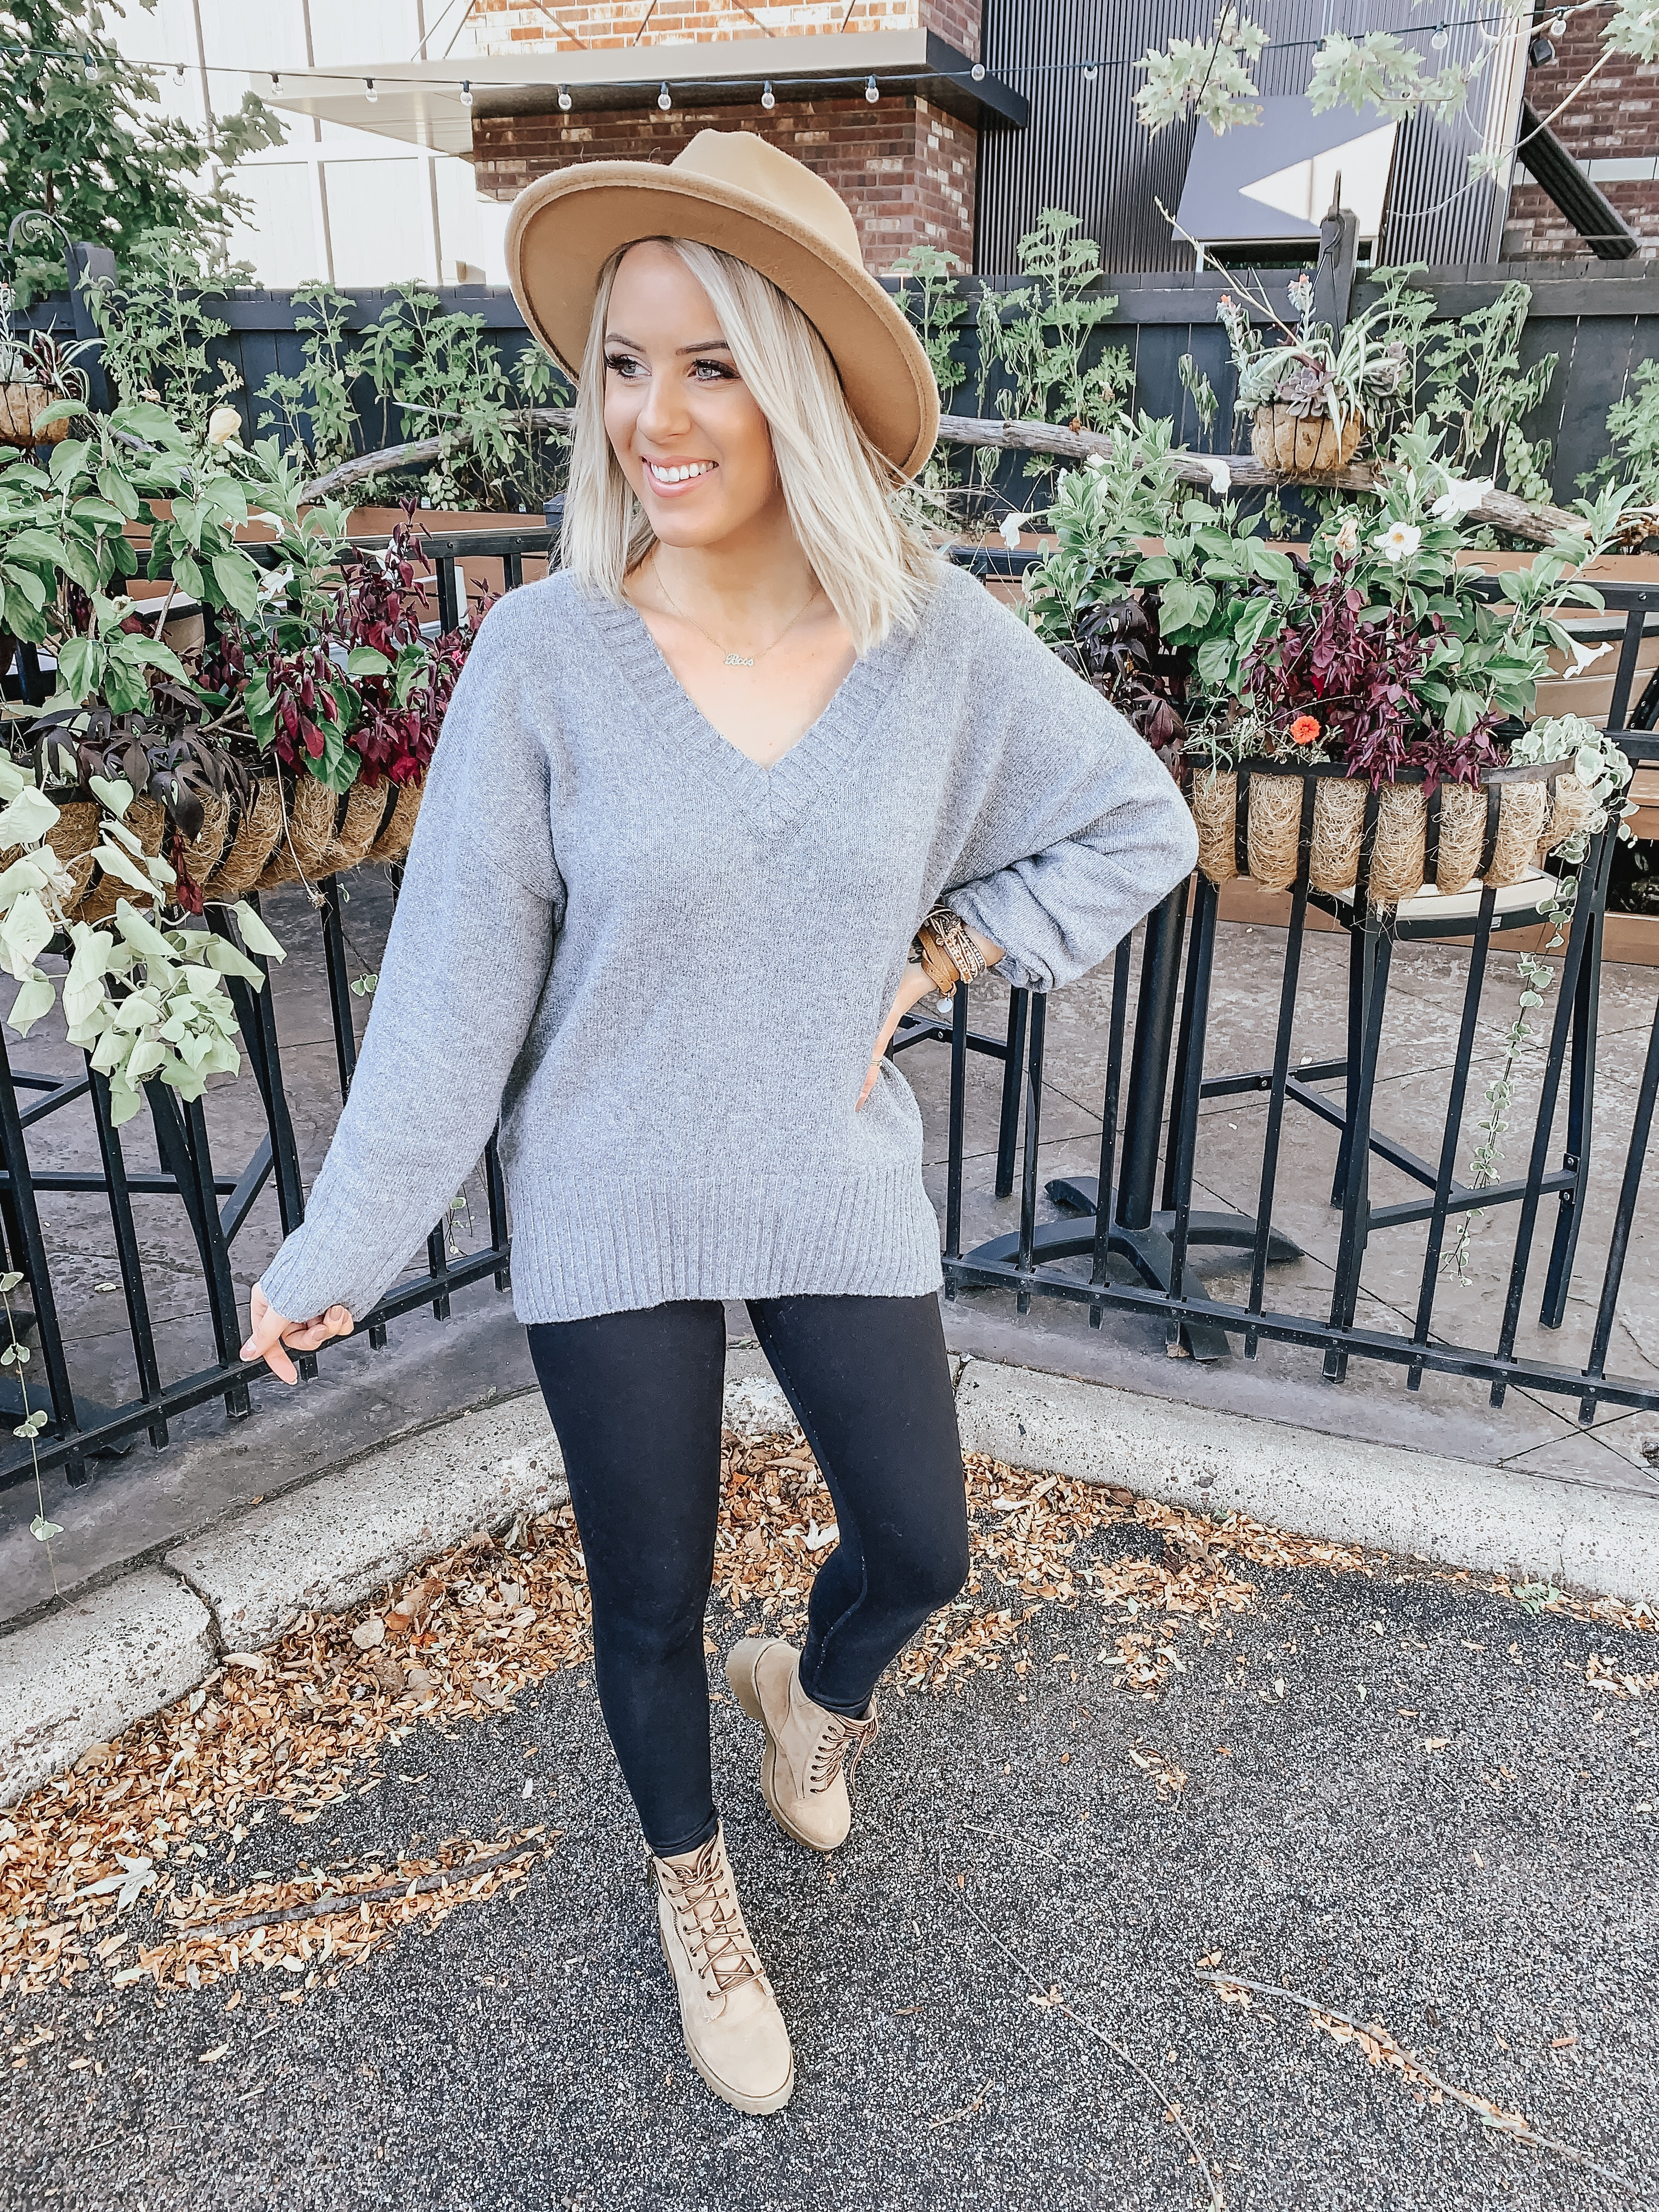 Fall Shoes from Walmart | Style Blogger Lauren Meyer shares her favorite fall shoes from Walmart!